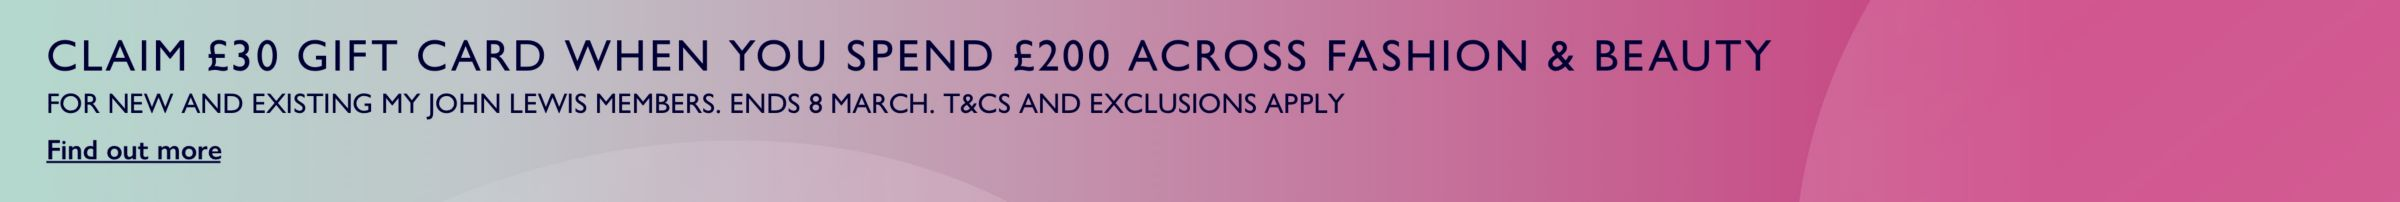 CLAIM £30 GIFT CARD WHEN YOU SPEND £200 ACROSS FASHION & BEAUTY